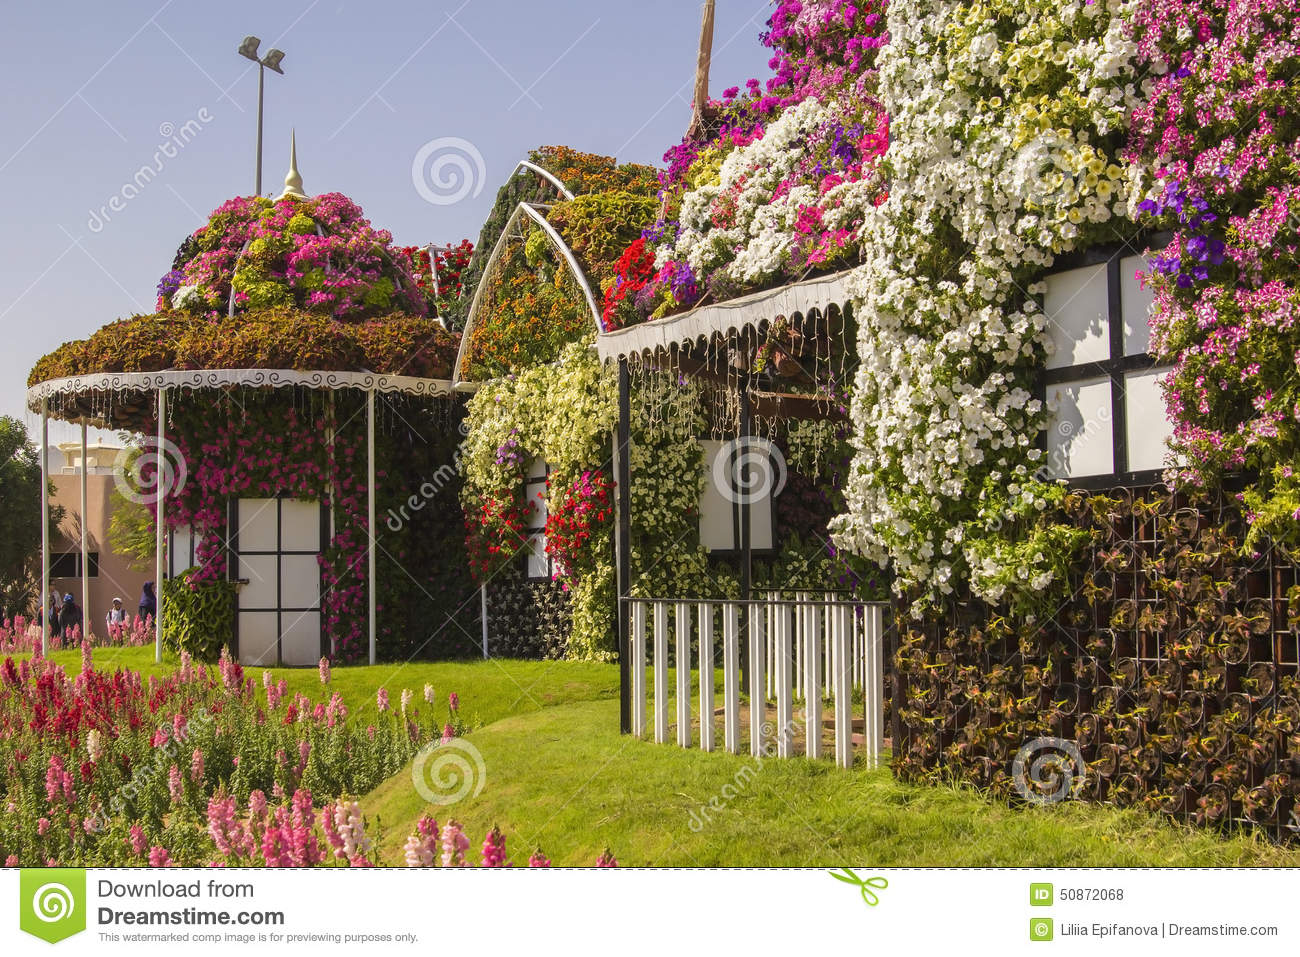 House Flowers In The Flower Village In The Park Editorial Stock Im